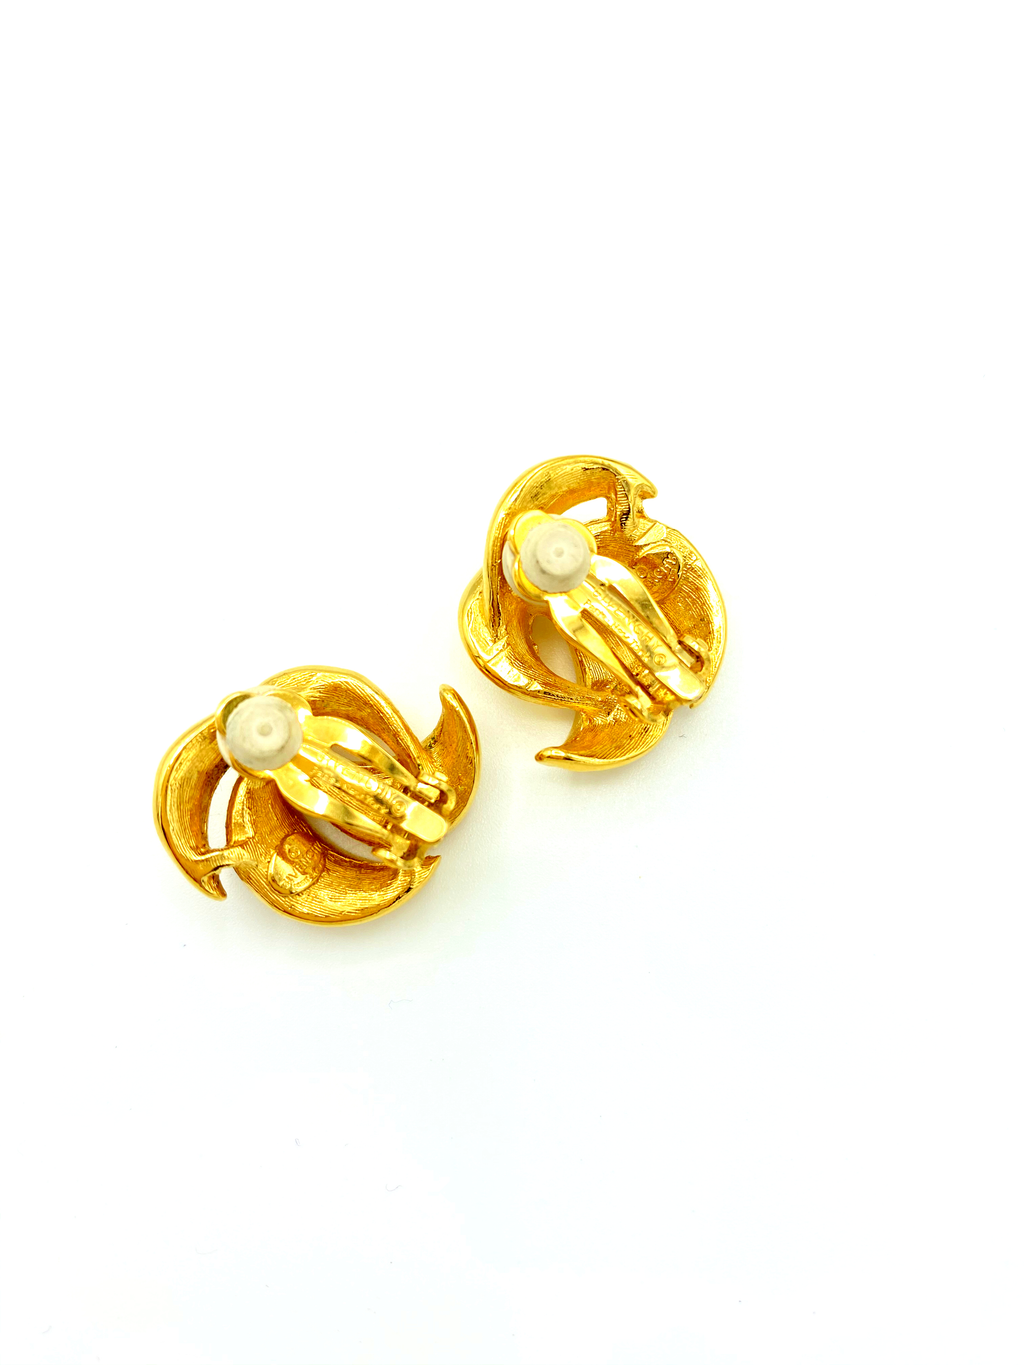 Givenchy Gold Swirl Petite Vintage Earrings-Sustainable Fashion with Vintage Style-Trending Designer Fashion-24 Wishes